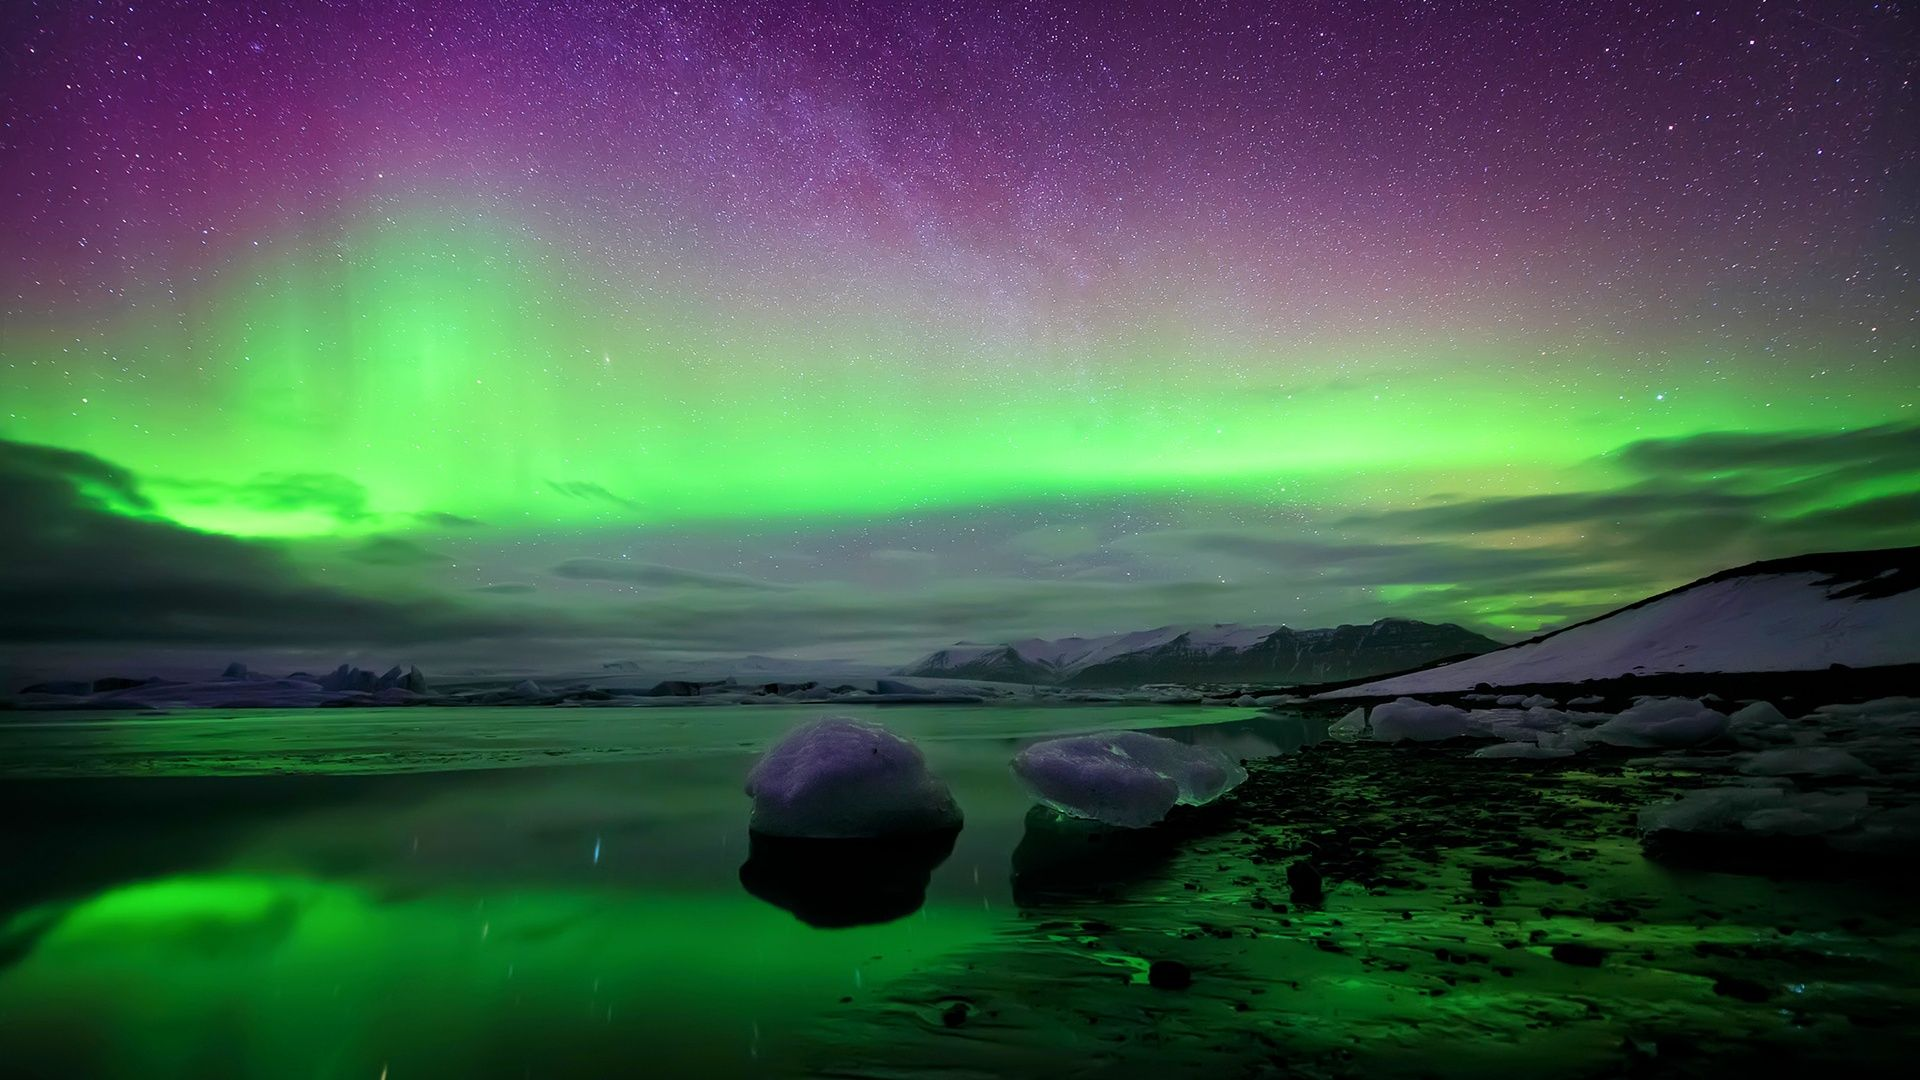 Iceland Northern Lights 1920x1080 Jpg 1920 1080 Hd Landscape Northern Lights Wallpaper Landscape Wallpaper